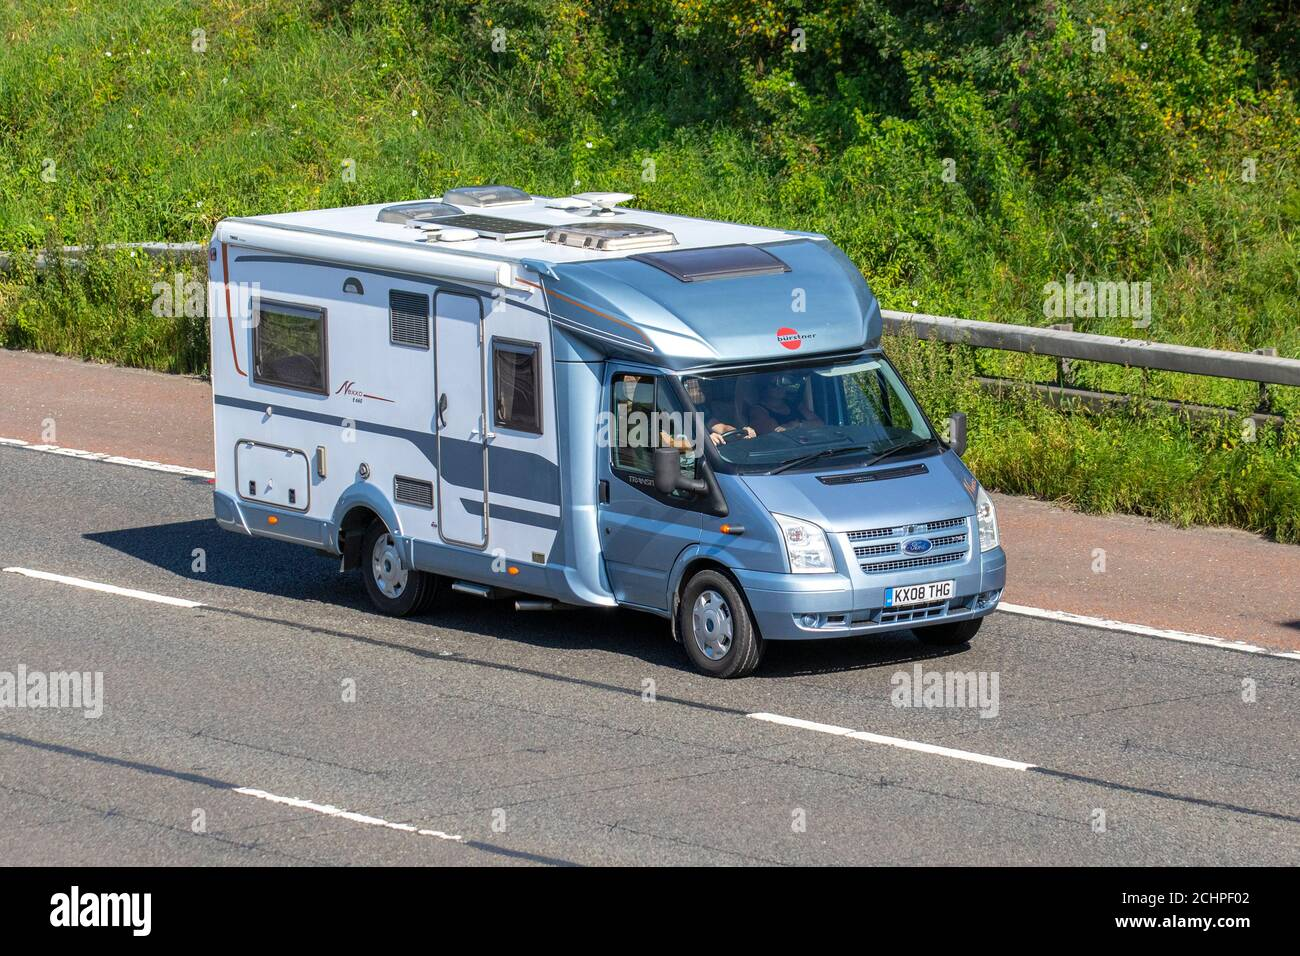 2008 Blue Ford Transit Caravans And Motorhomes Campervans On Britain S Roads Rv Leisure Vehicle Family Holidays